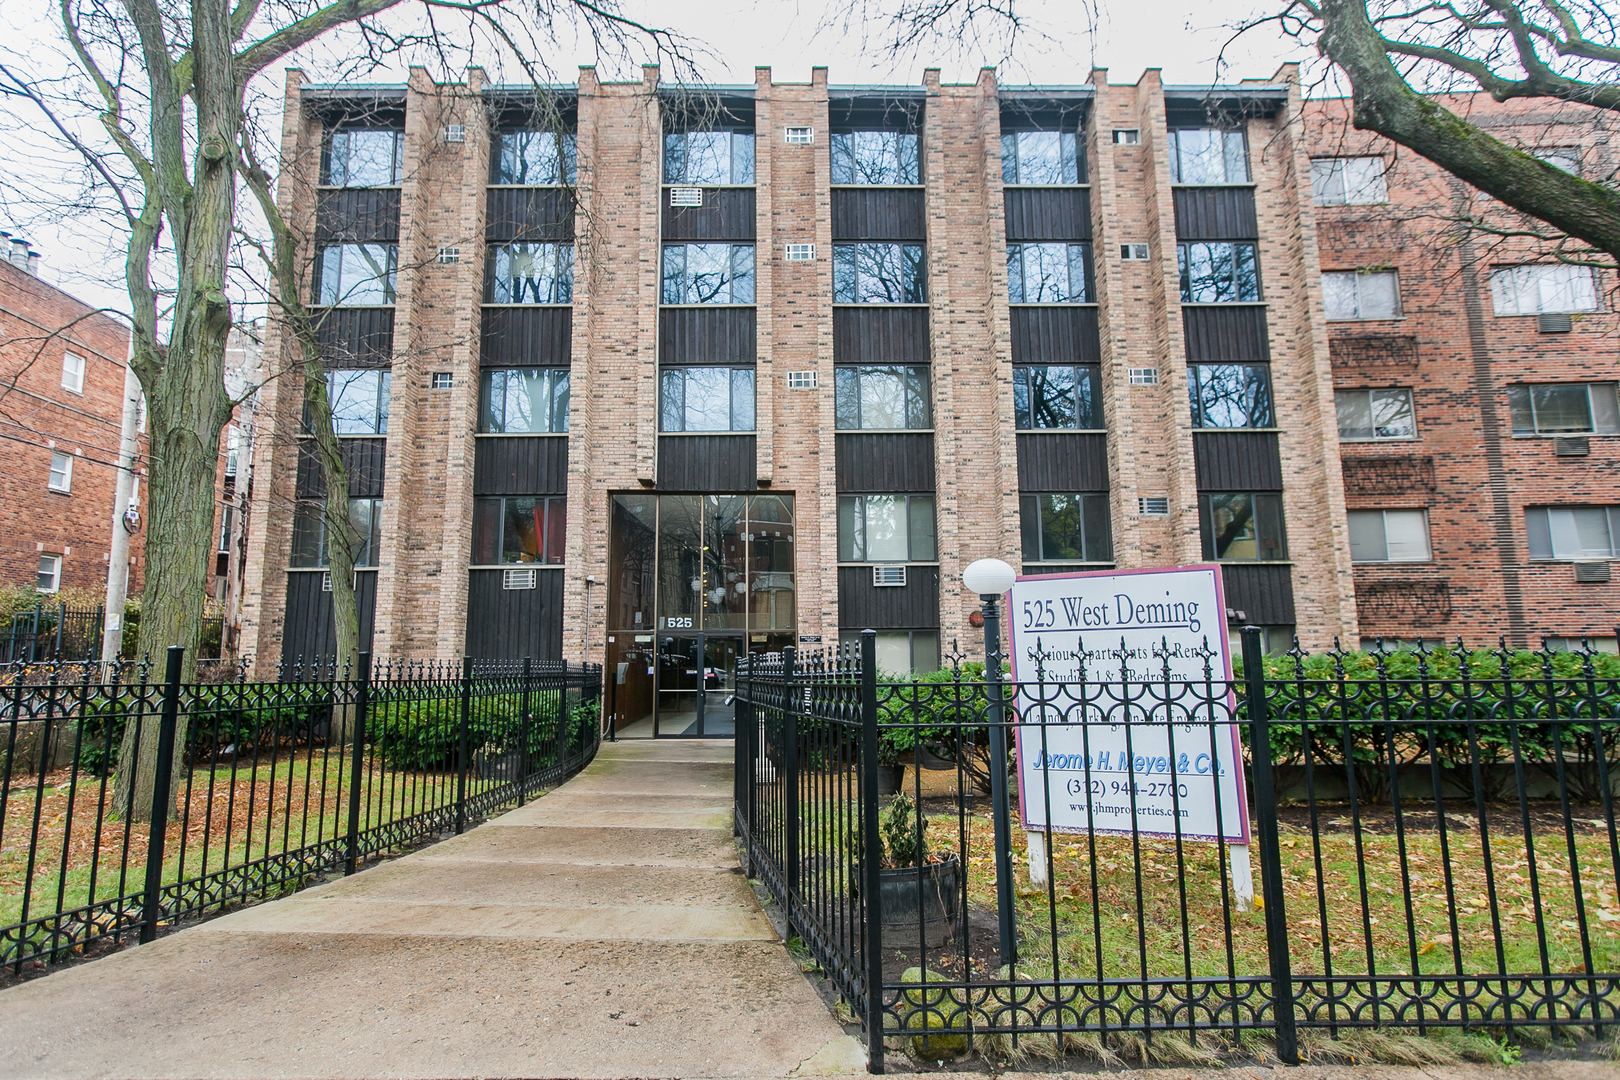 525 W Deming Place, Chicago, IL 60614